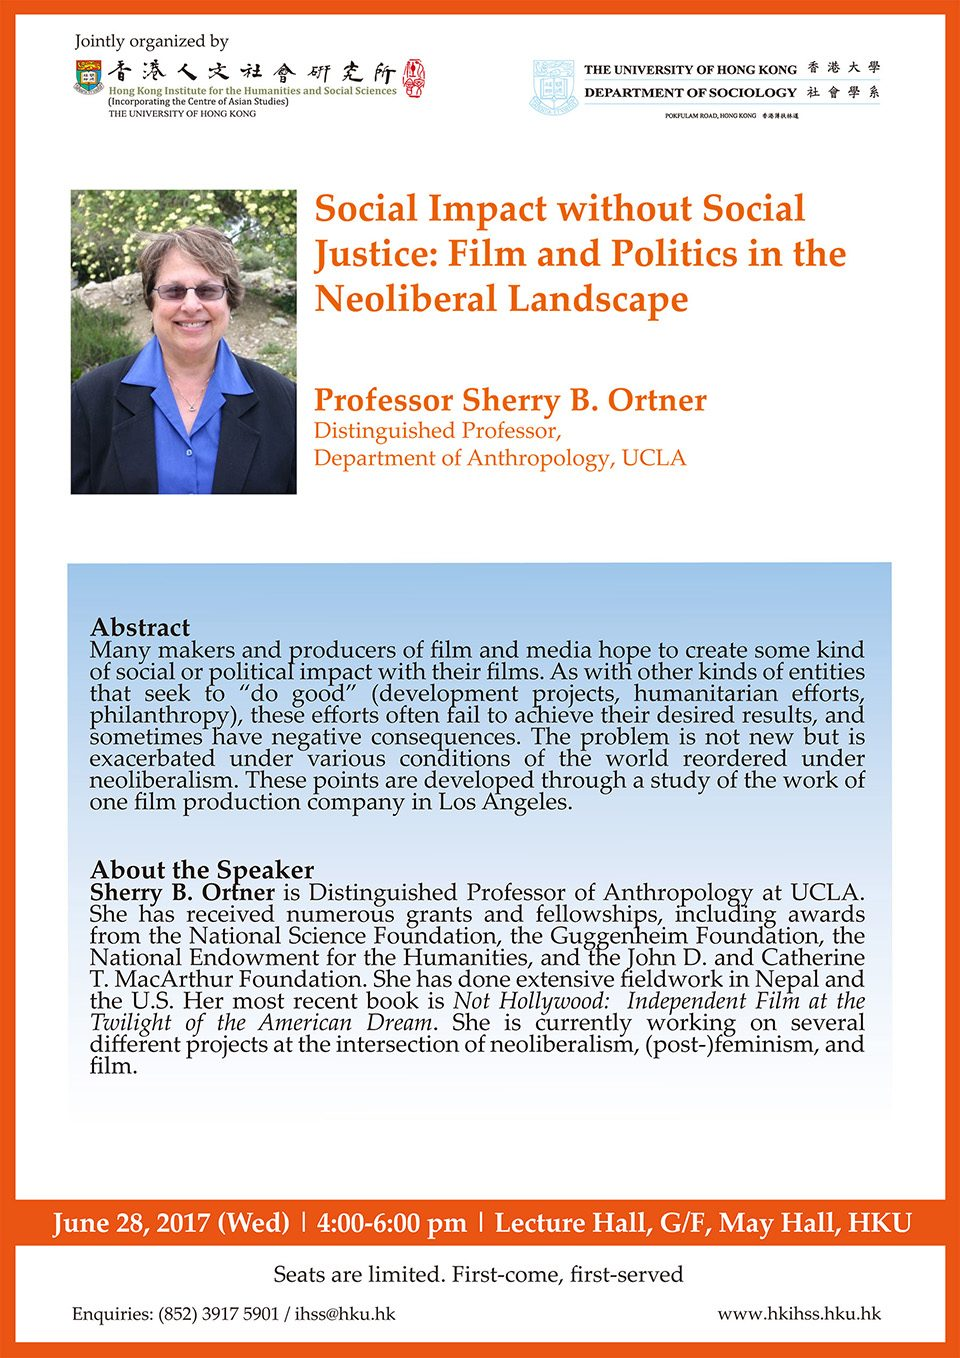 """""""Social Impact without Social Justice: Film and Politics in the Neoliberal Landscape"""" by Prof. Sherry B. Ortner (June 28, 2017)"""